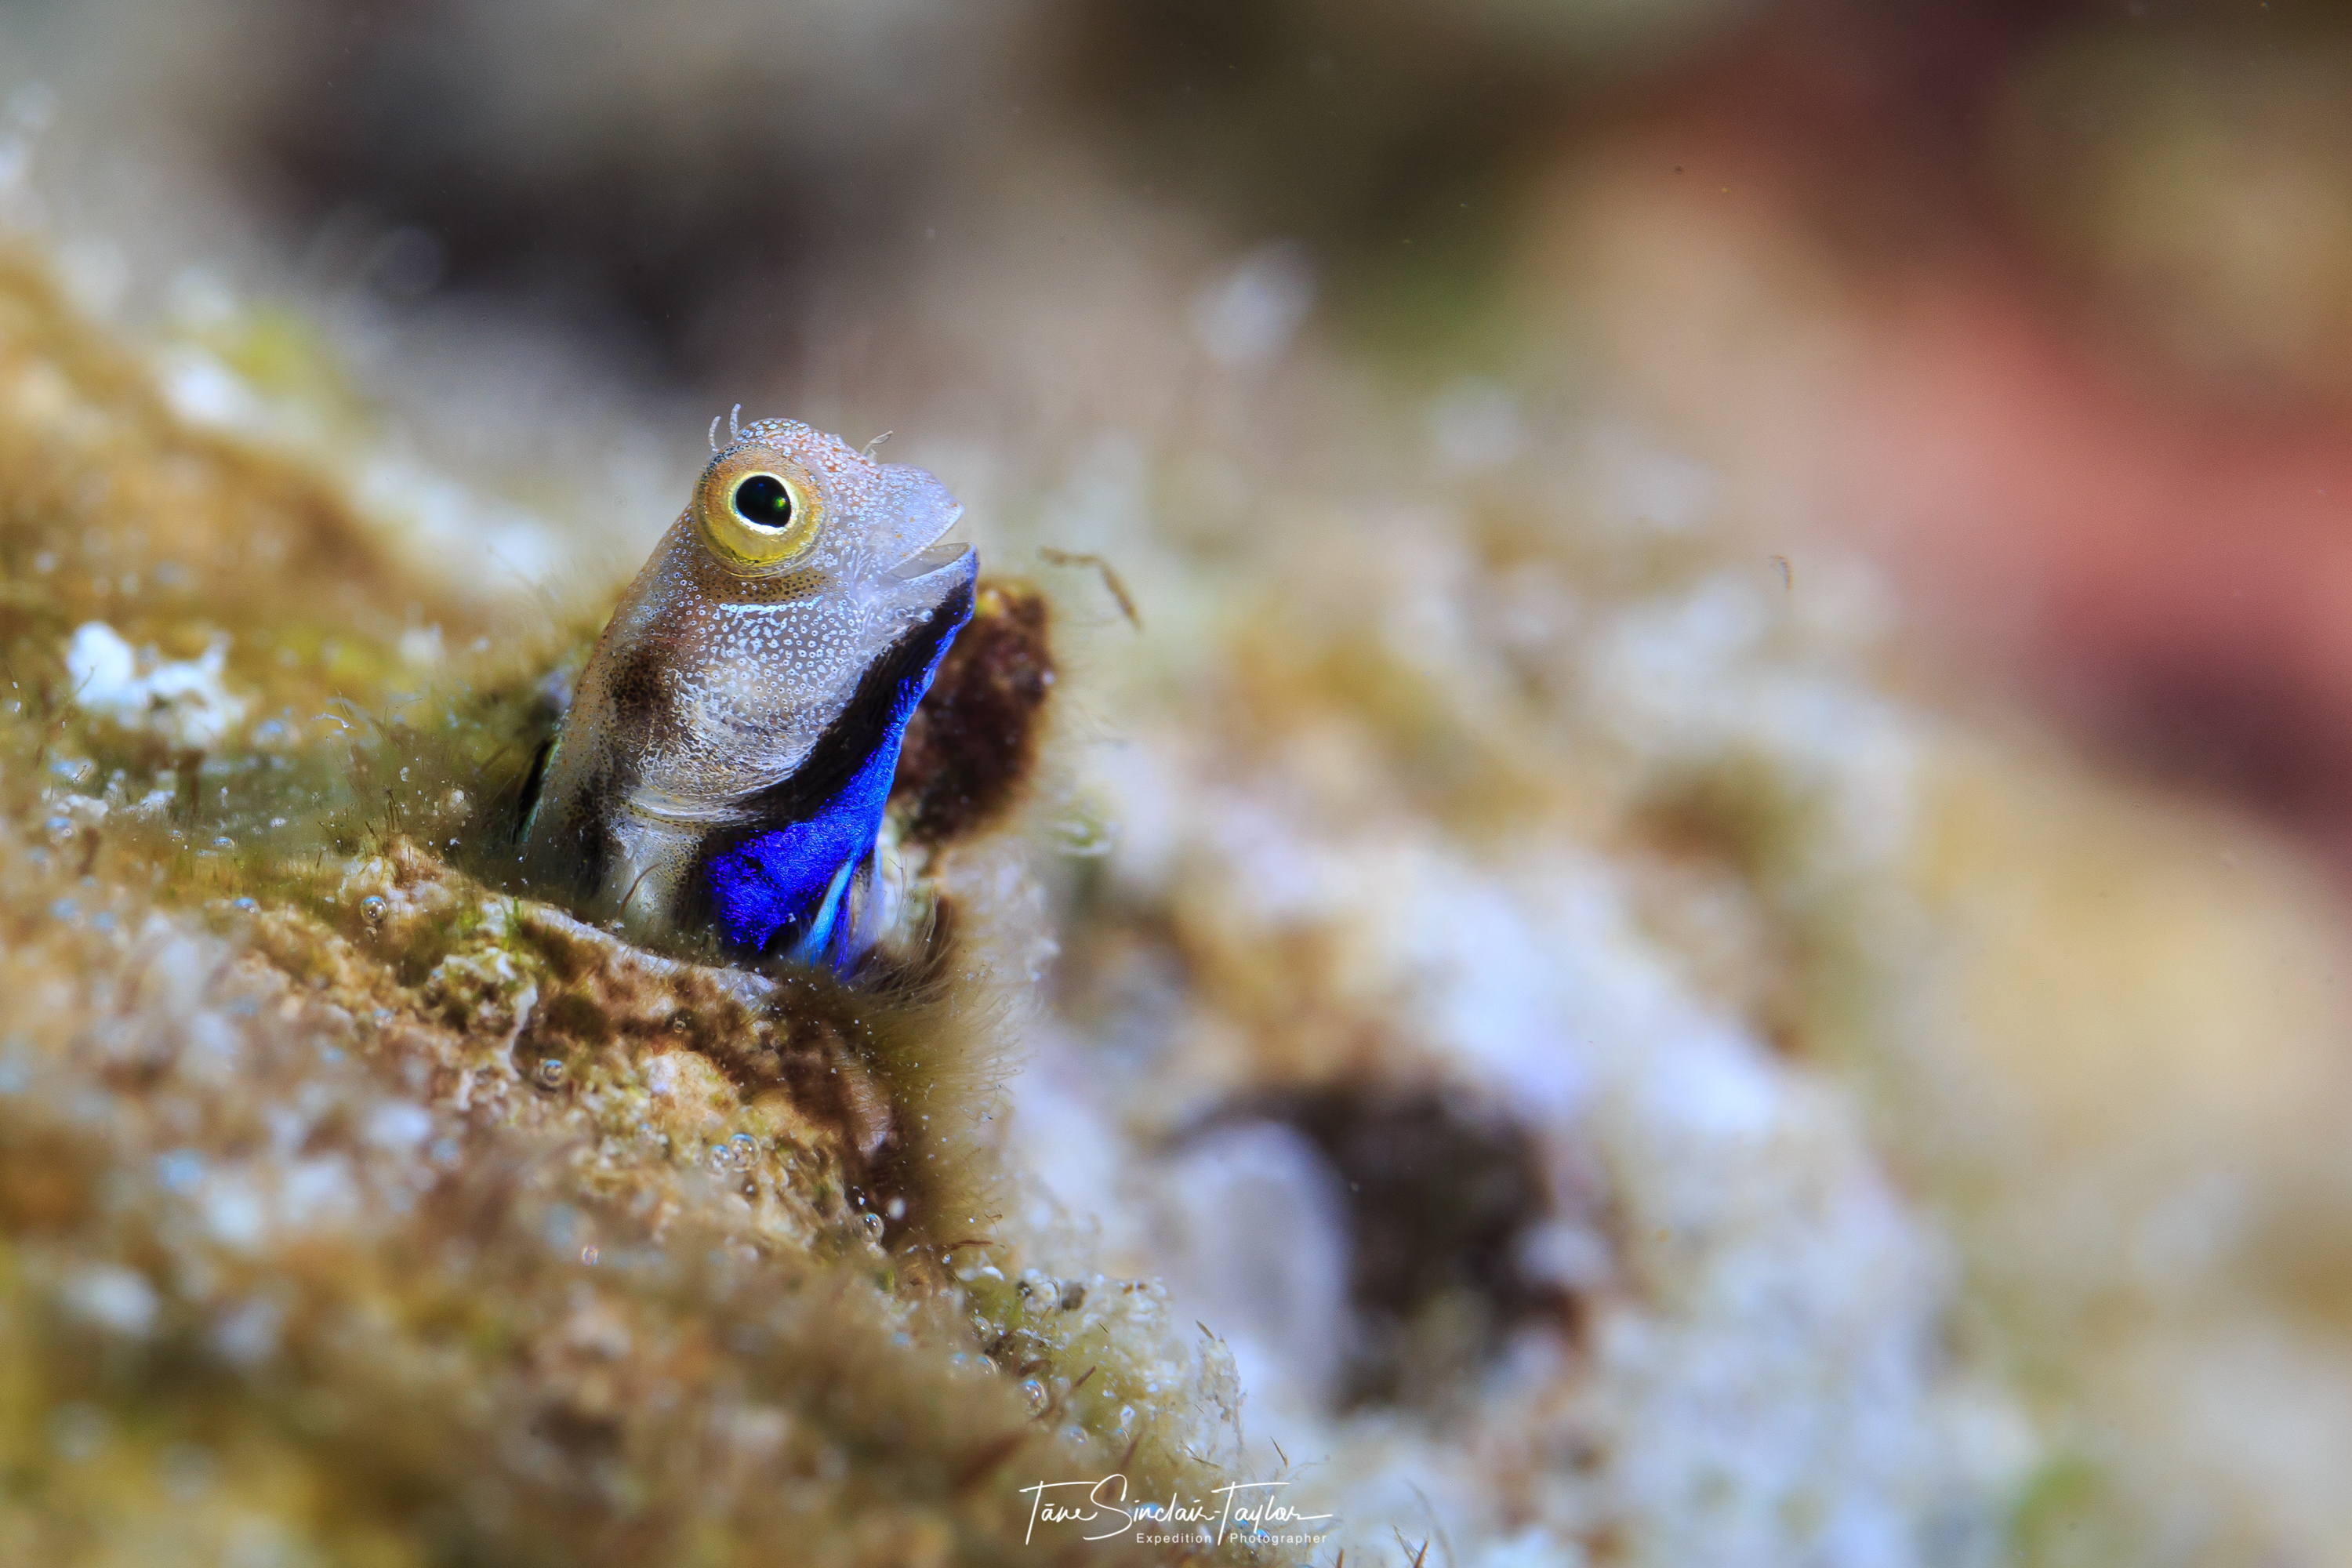 bluebelly bennie fish